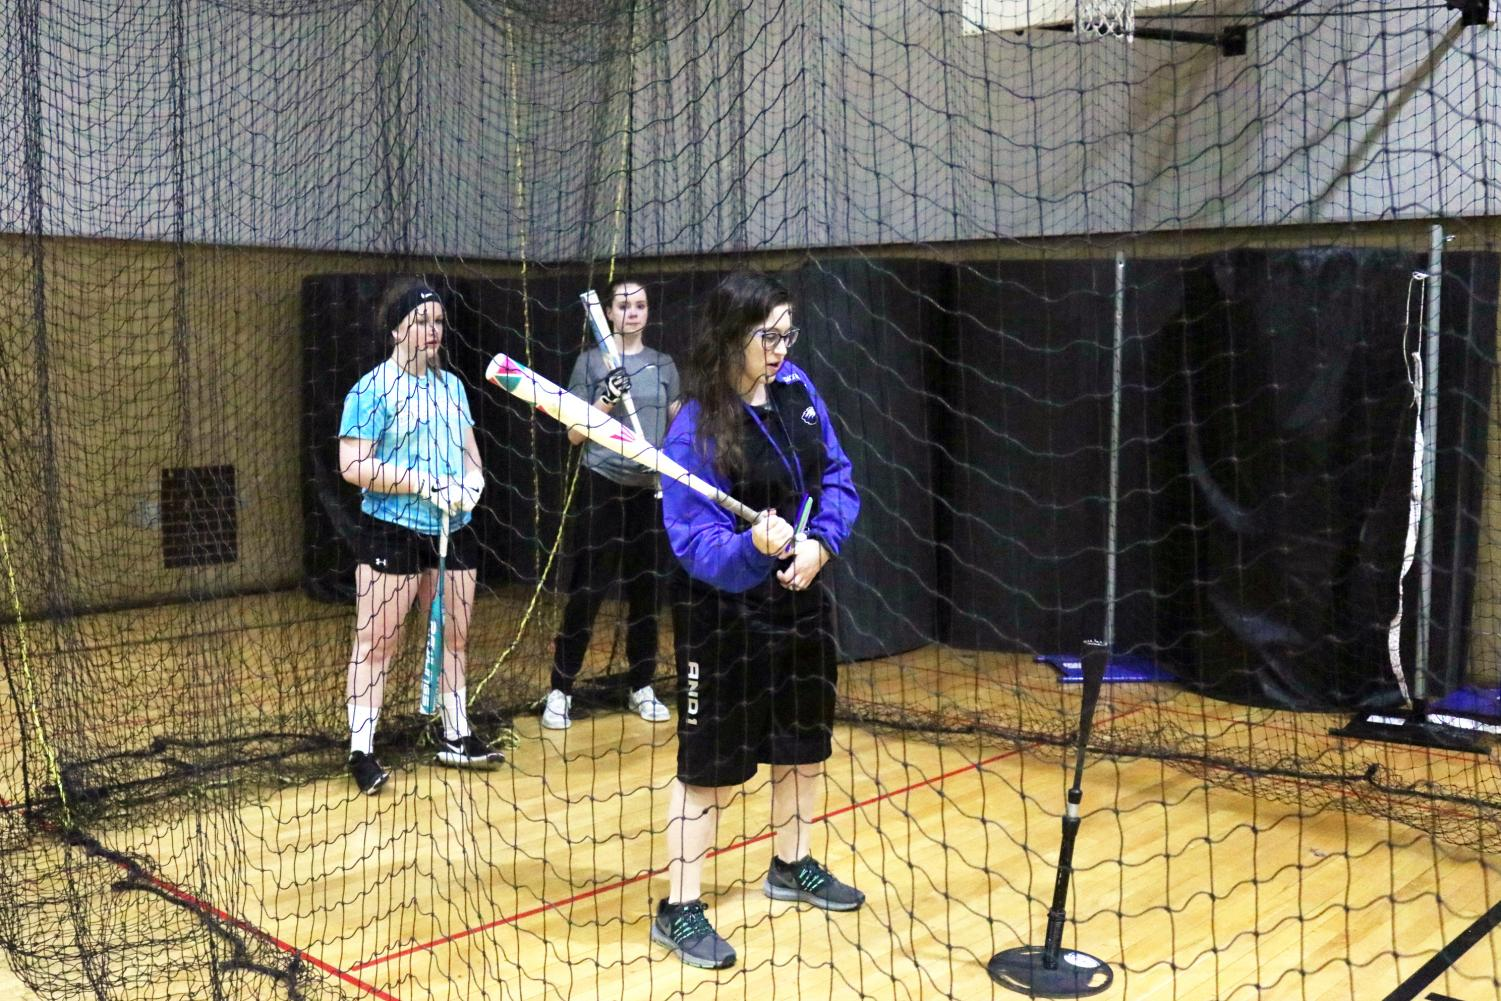 New Coach Rothbart demonstrates to her freshmen/sophomore team valuable softball skills.